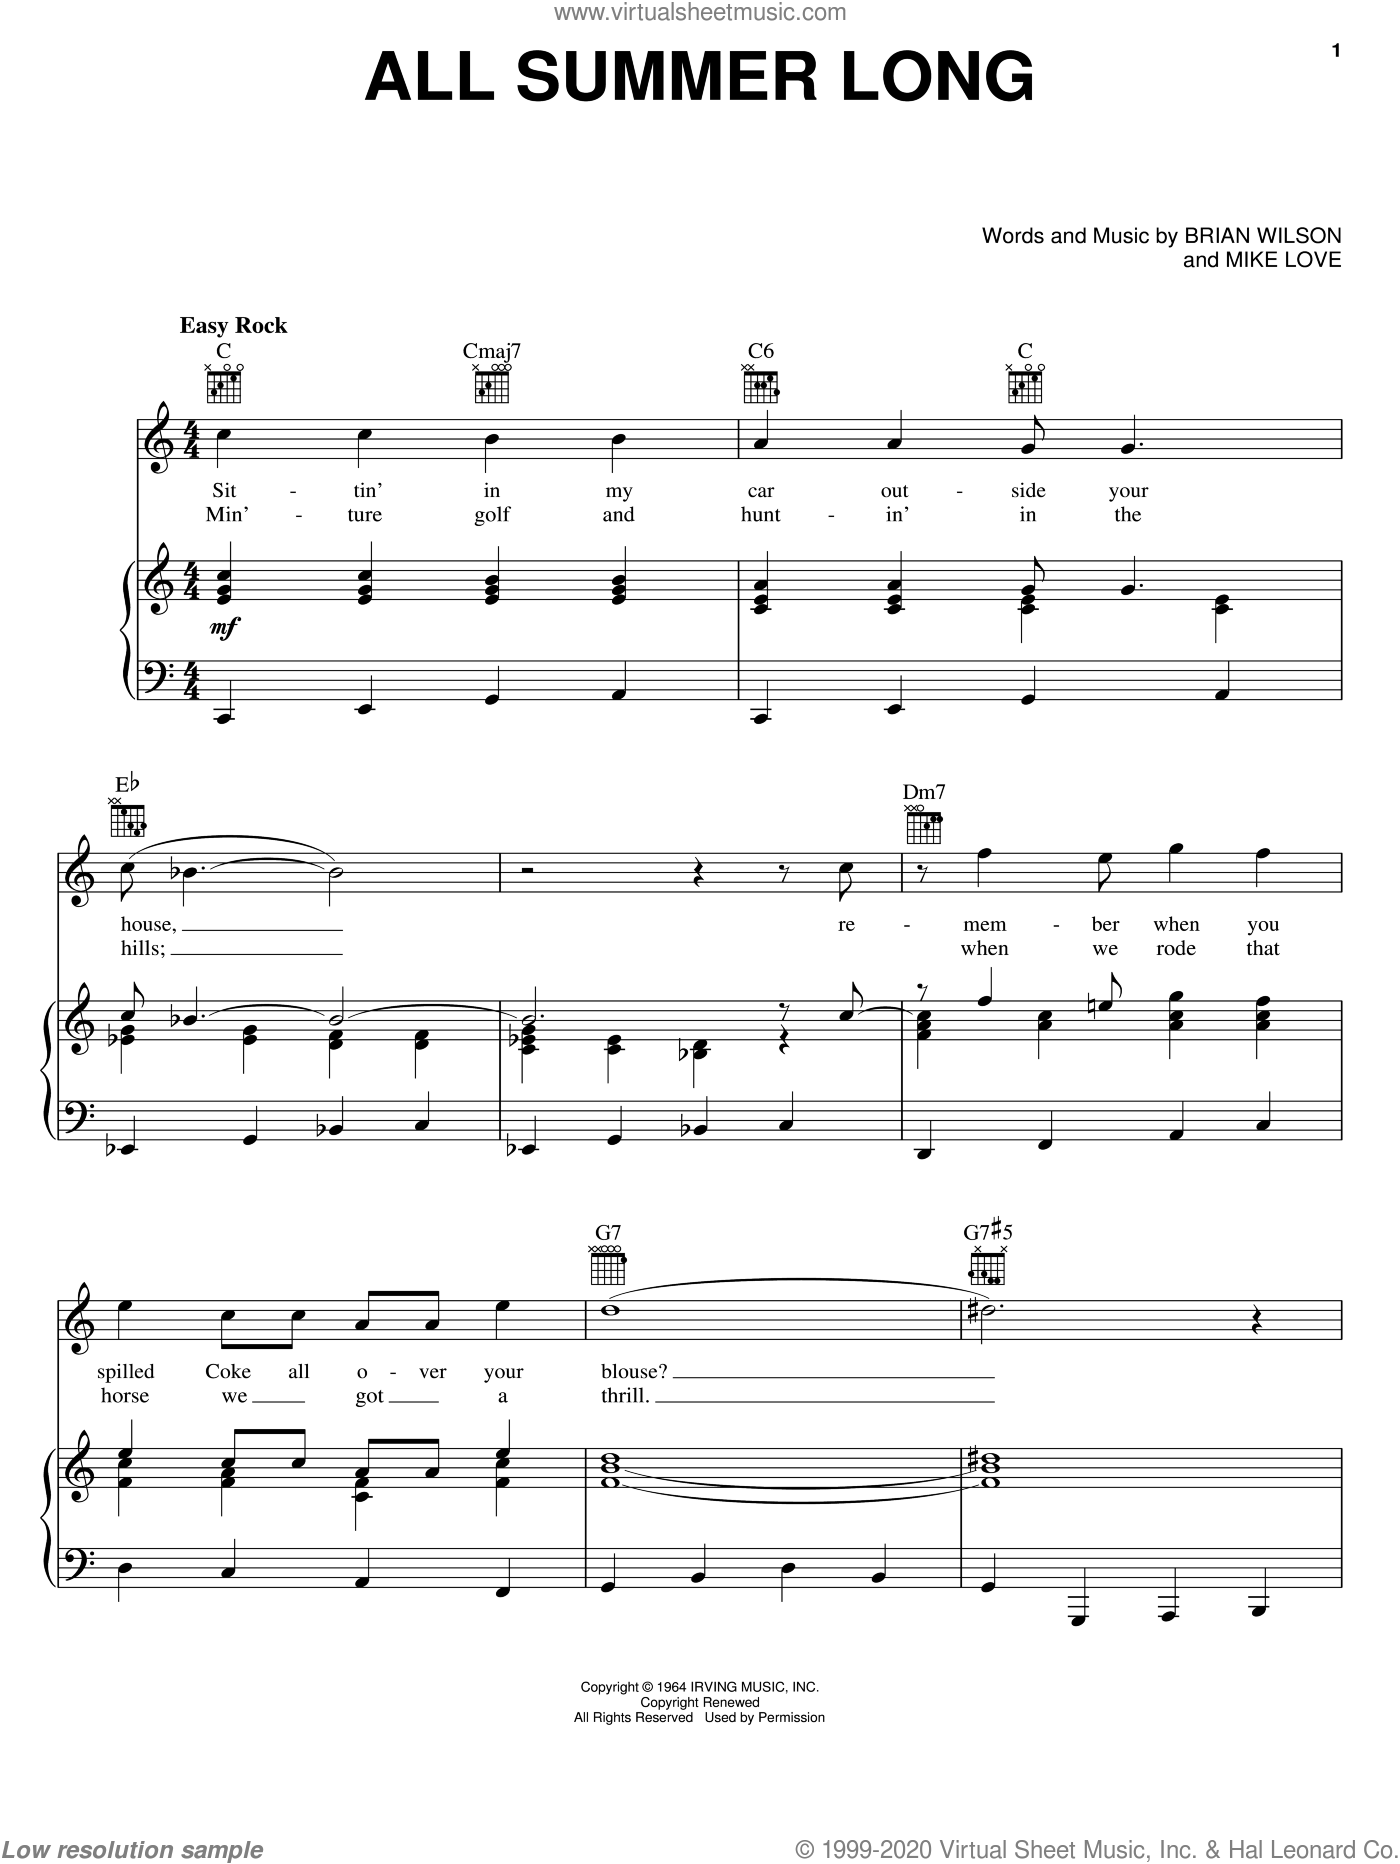 All Summer Long sheet music for voice, piano or guitar by Mike Love